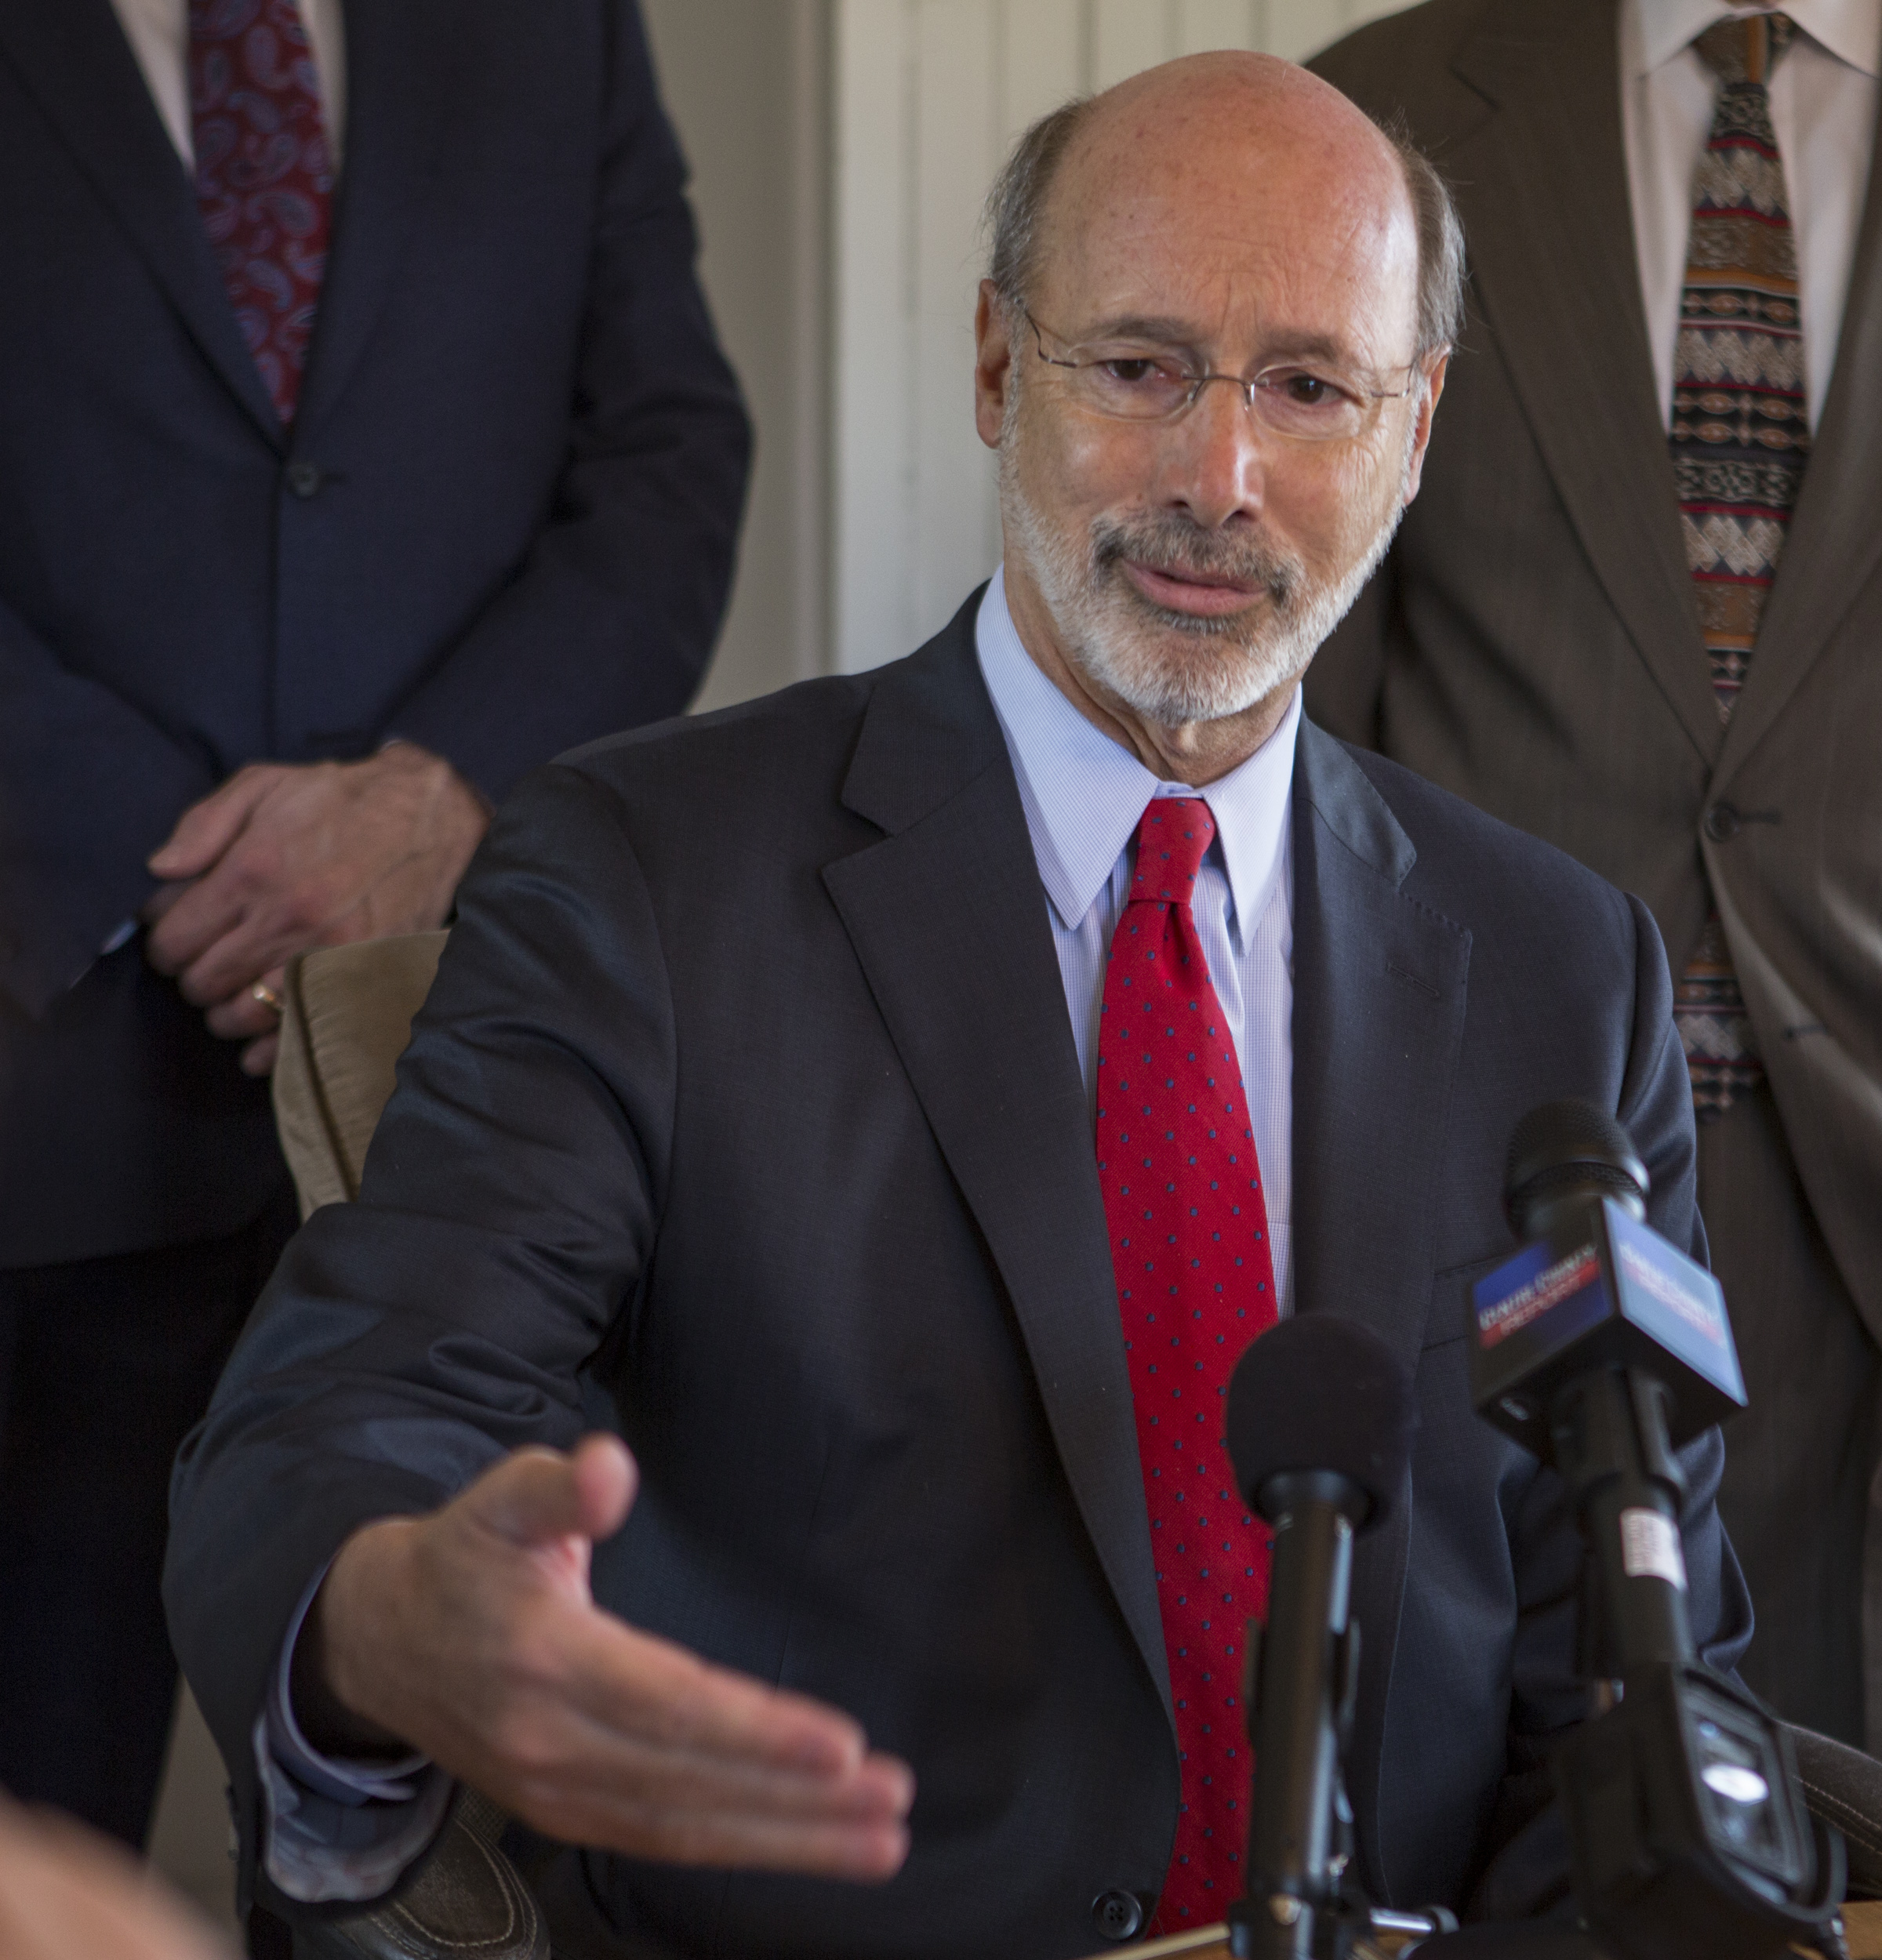 Pennsylvania Gov. Tom Wolf meets with members of the local media to discuss pats of his reform plan at Sen. Bob Casey's office in Bellefonte on Tuesday, March 29, 2016. Casey's office in Bellefonte on Tuesday, March 29, 2016.